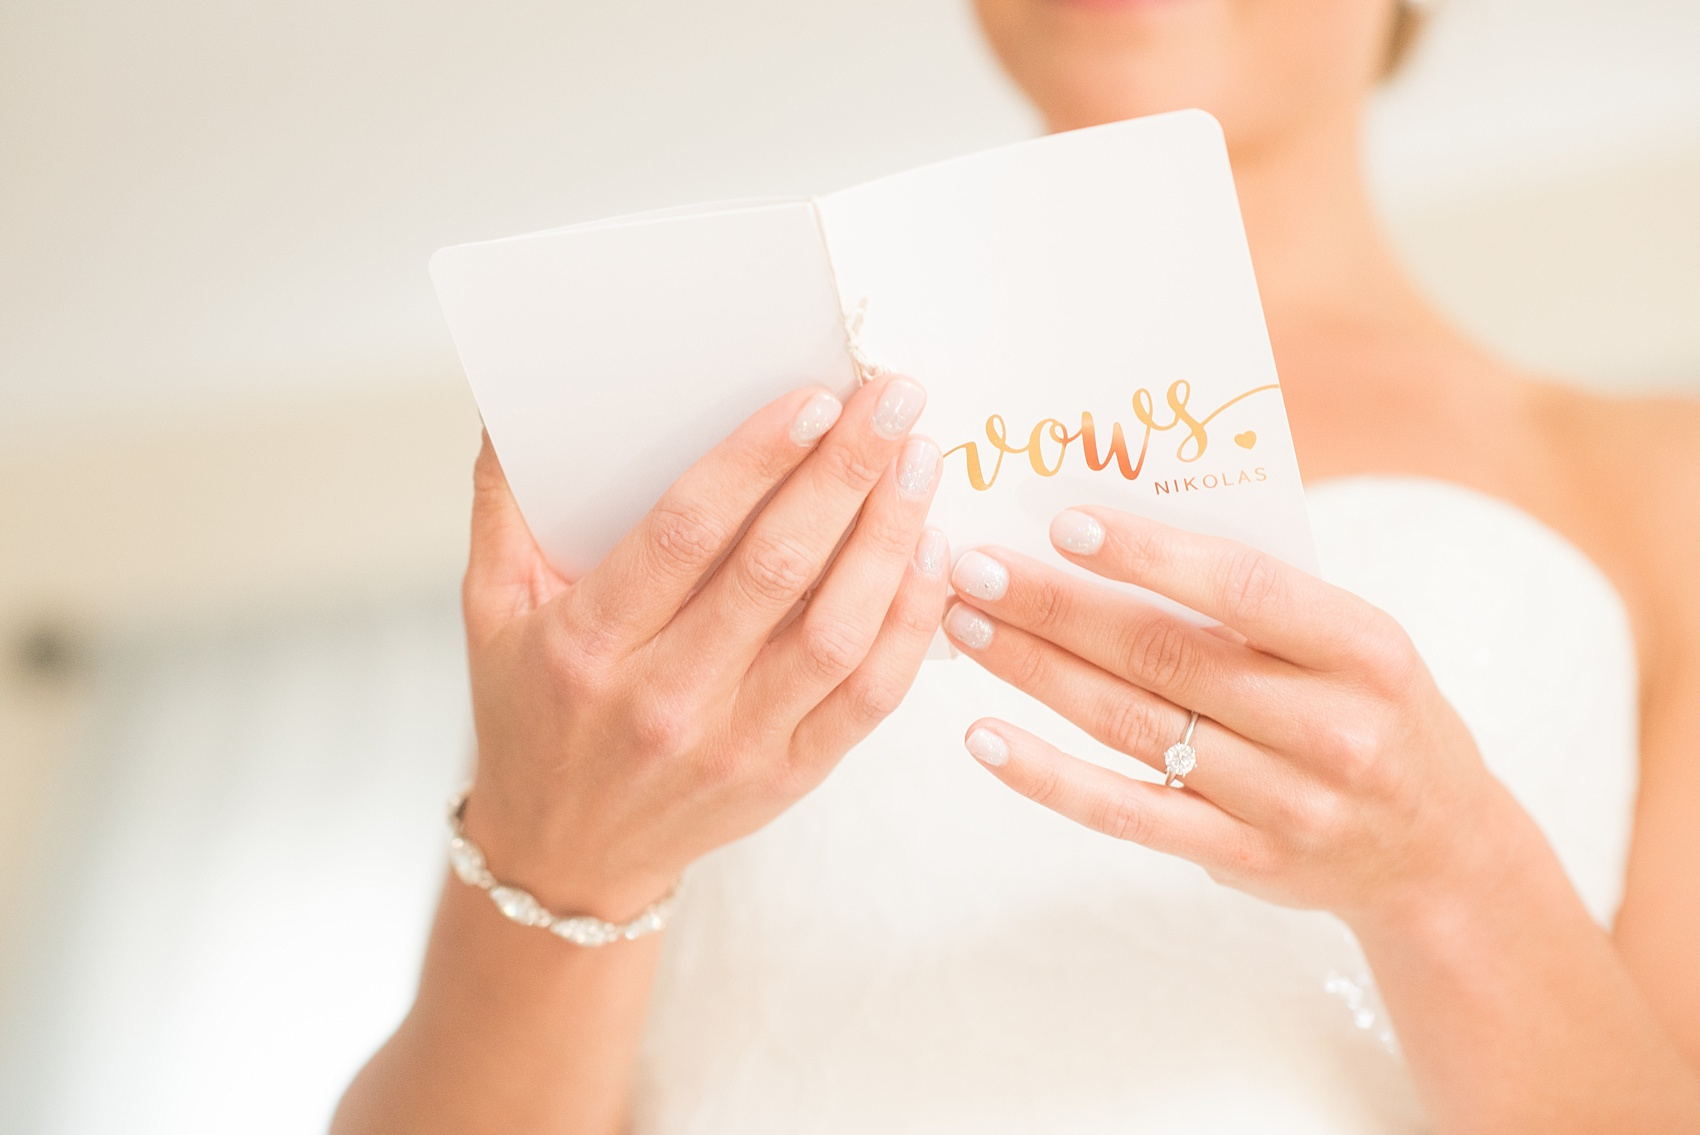 Mikkel Paige Photography photos from a nautical wedding at Bay Head Yacht Club in NJ. The bride and groom had silver and white customized vow books.